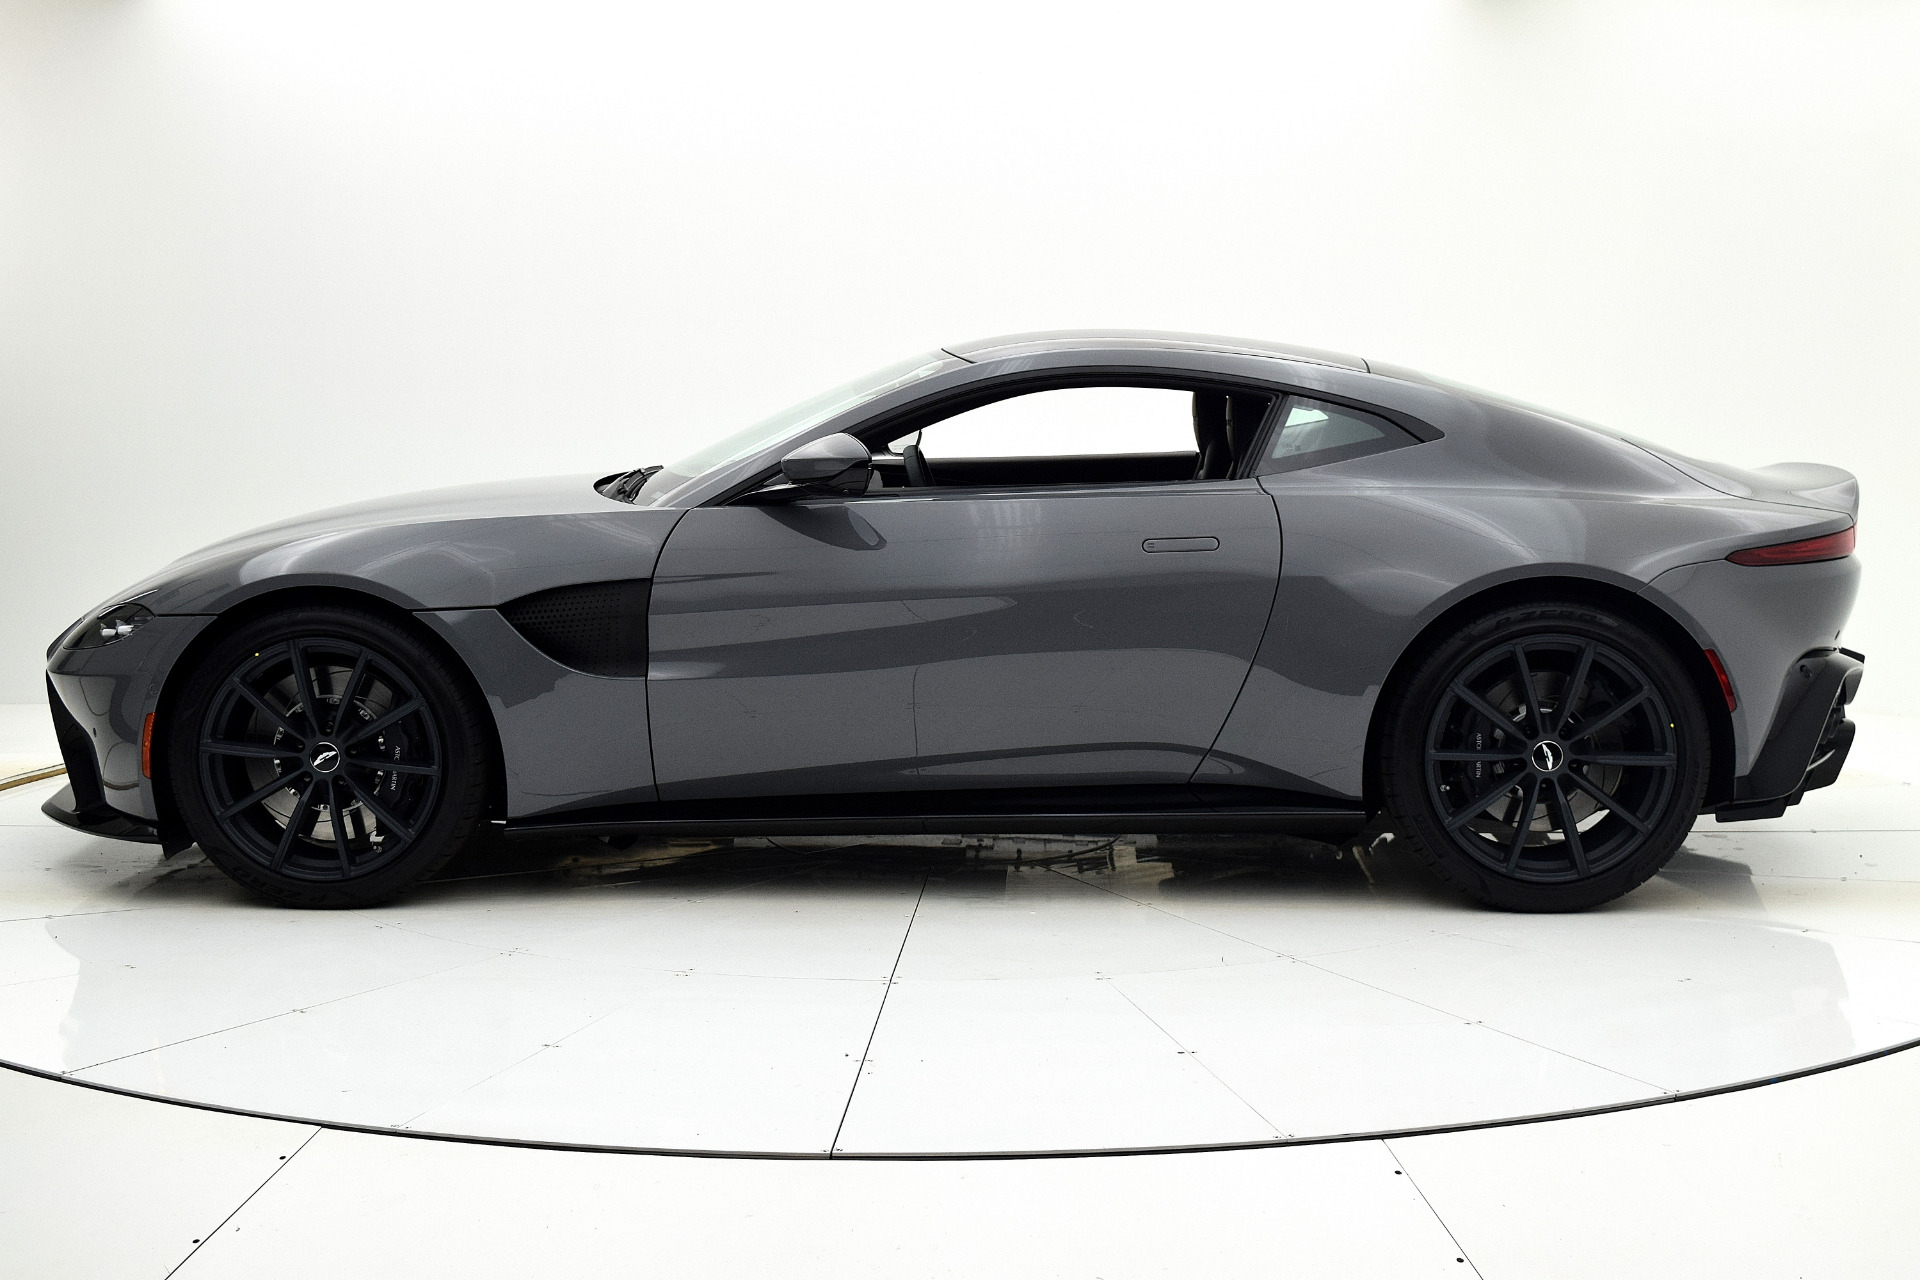 New 2019 Aston Martin Vantage Coupe For Sale 174 284 F C Kerbeck Aston Martin Stock 19a117